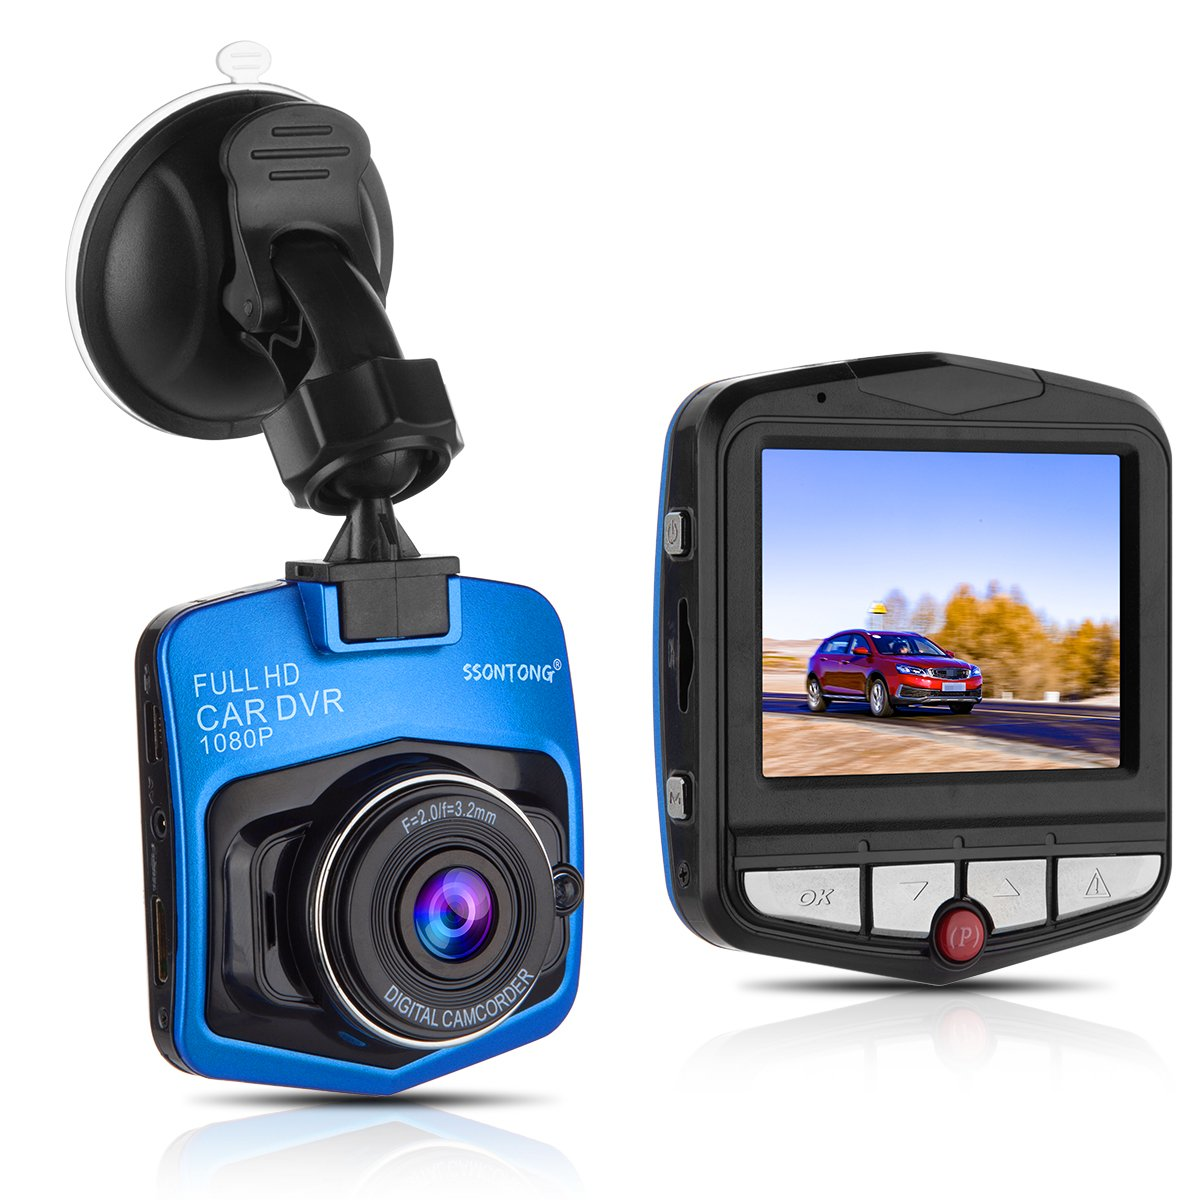 Dash Cam,Ssontong Mini Car Dashboard Camera, Full HD 1080P 2.31″ Screen 140 Degree Wide Angle Lens Vehicle On-Dash Video Recorder with Night Vision, G-Sensor, Parking Monitoring, Loop Recording(Blue)